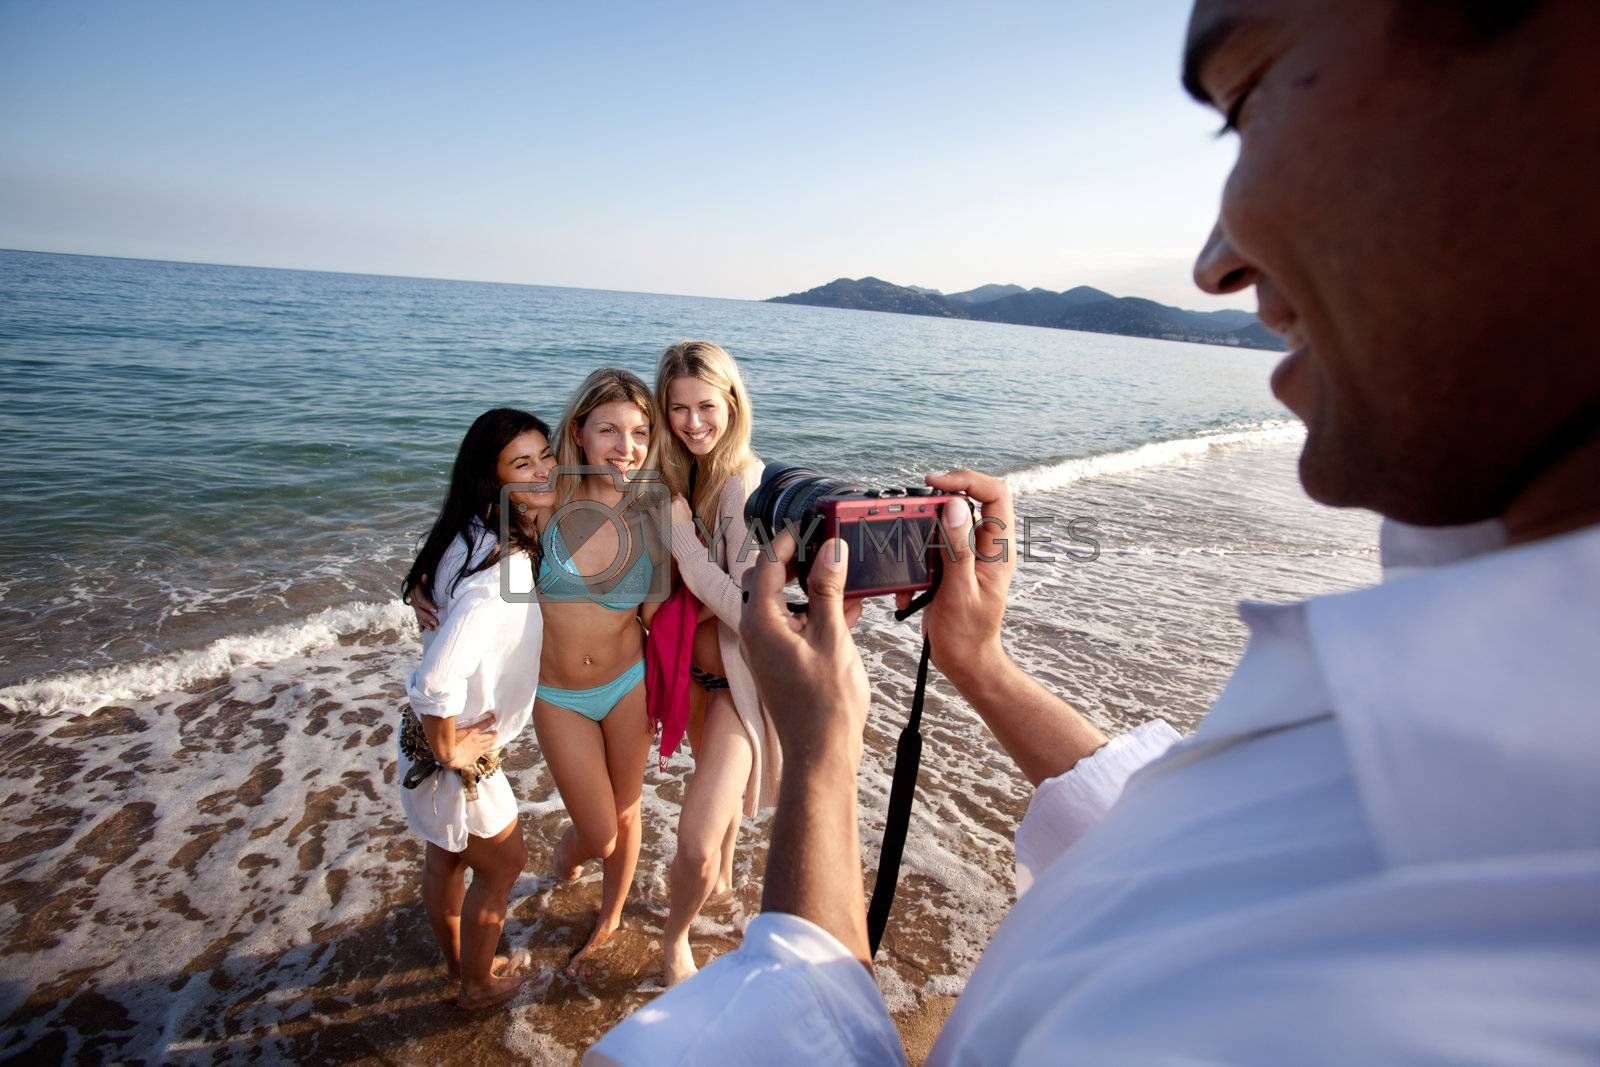 A man taking a photo of three women at the ocean.